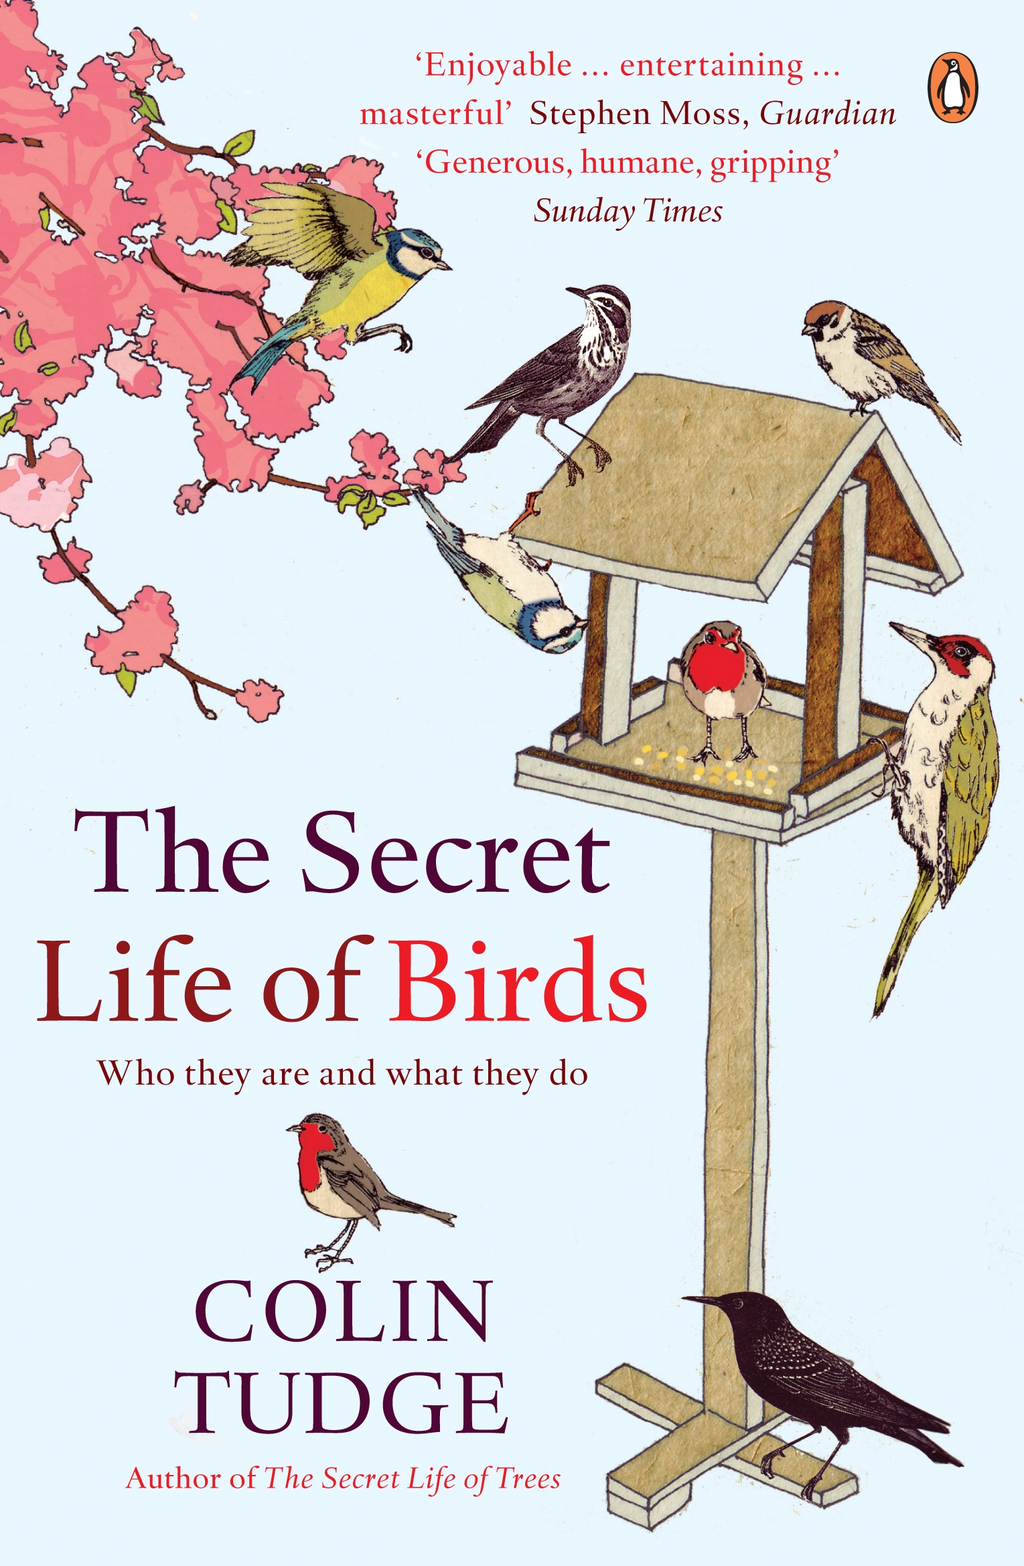 The Secret Life of Birds Who they are and what they do